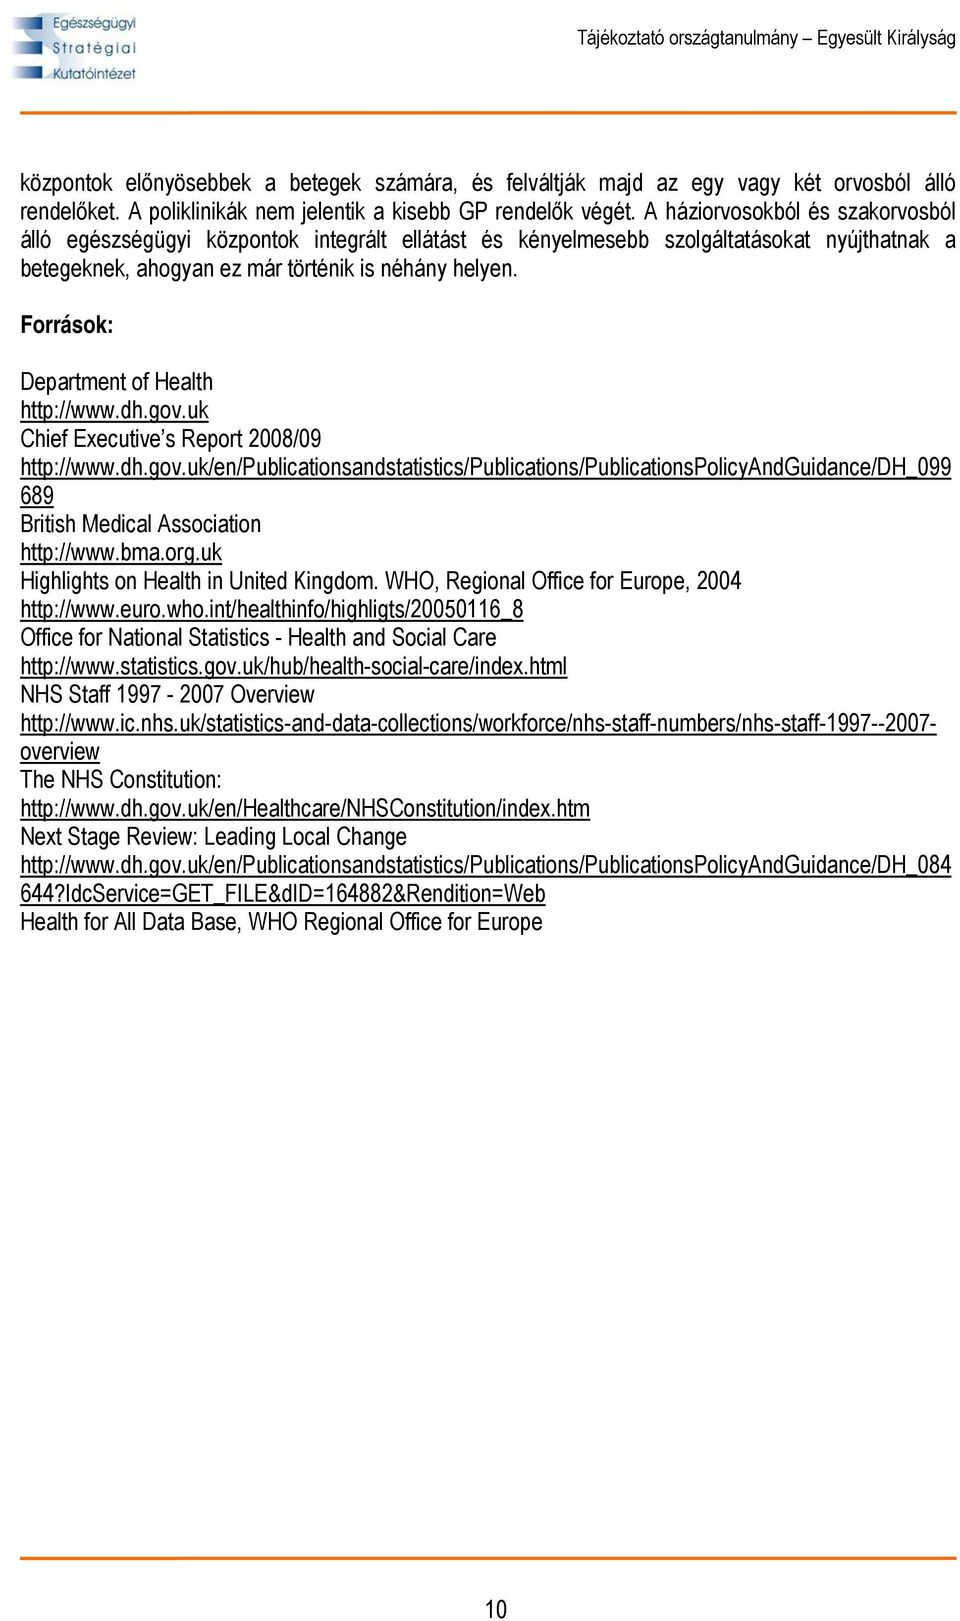 Források: Department of Health http://www.dh.gov.uk Chief Executive s Report 2008/09 http://www.dh.gov.uk/en/publicationsandstatistics/publications/publicationspolicyandguidance/dh_099 689 British Medical Association http://www.